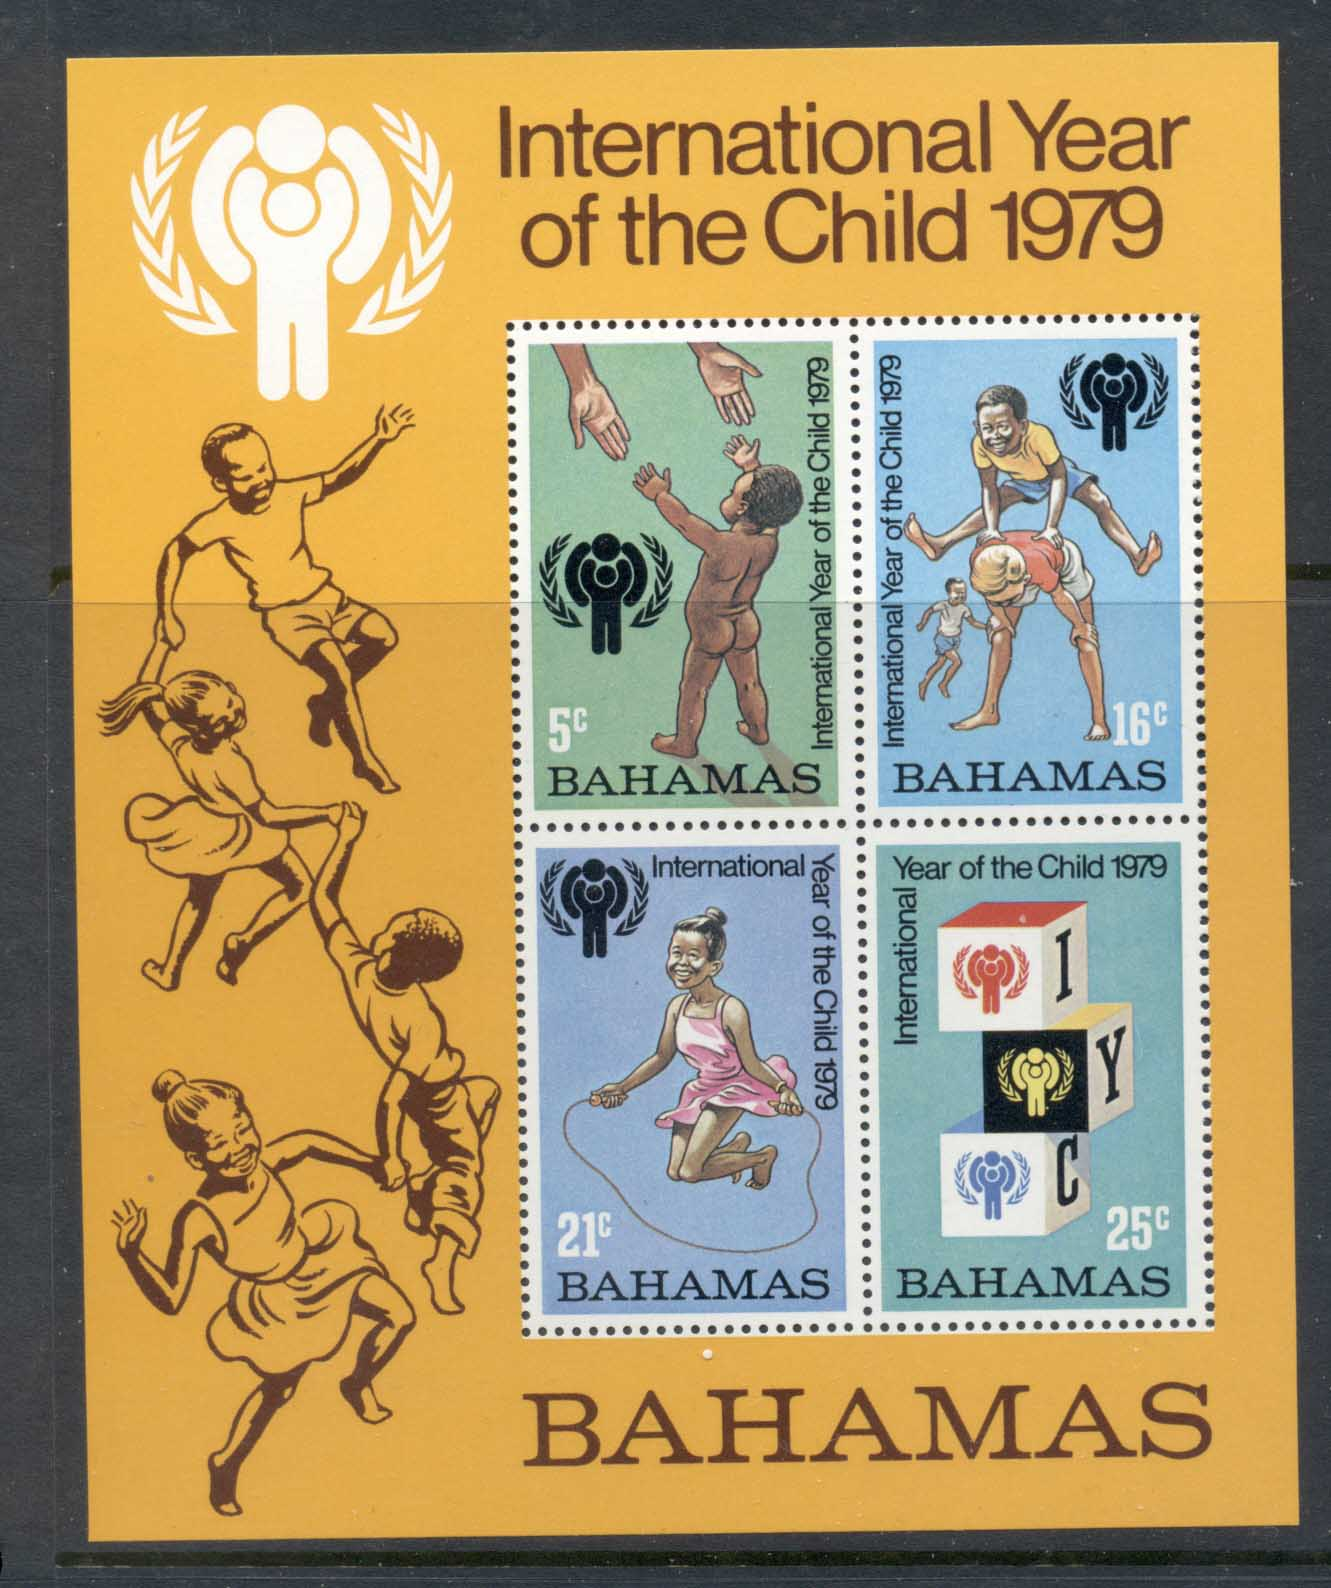 Bahamas 1979 IYC International year of the Child MS MUH